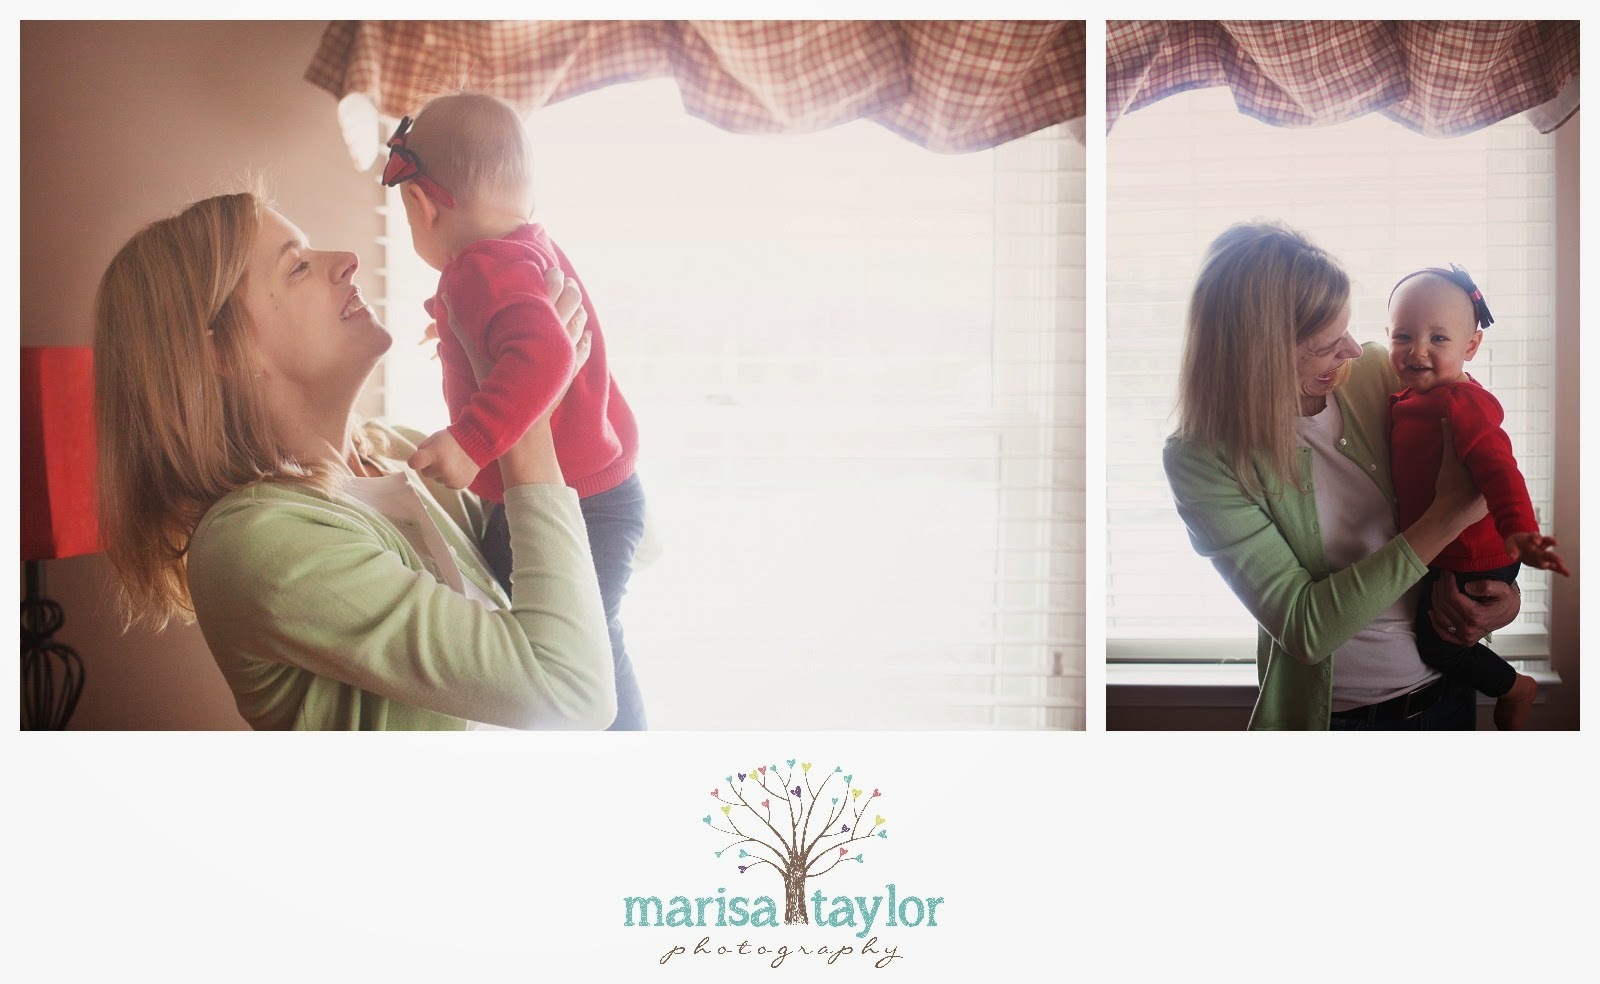 marisa taylor photography, delaware family photographer, pennyslvania family photographer